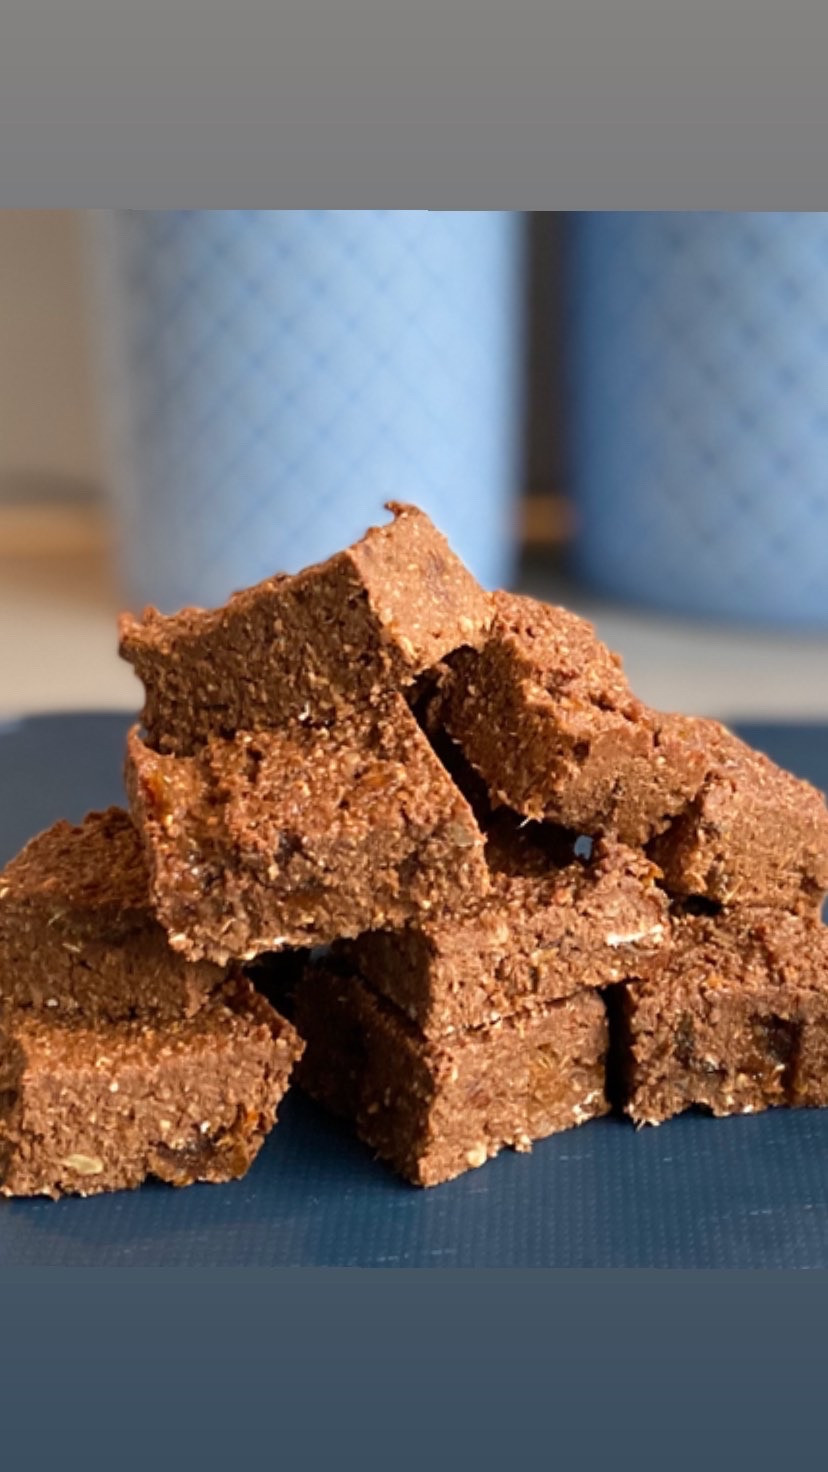 Guilt Free chocolate treat even the kids will love